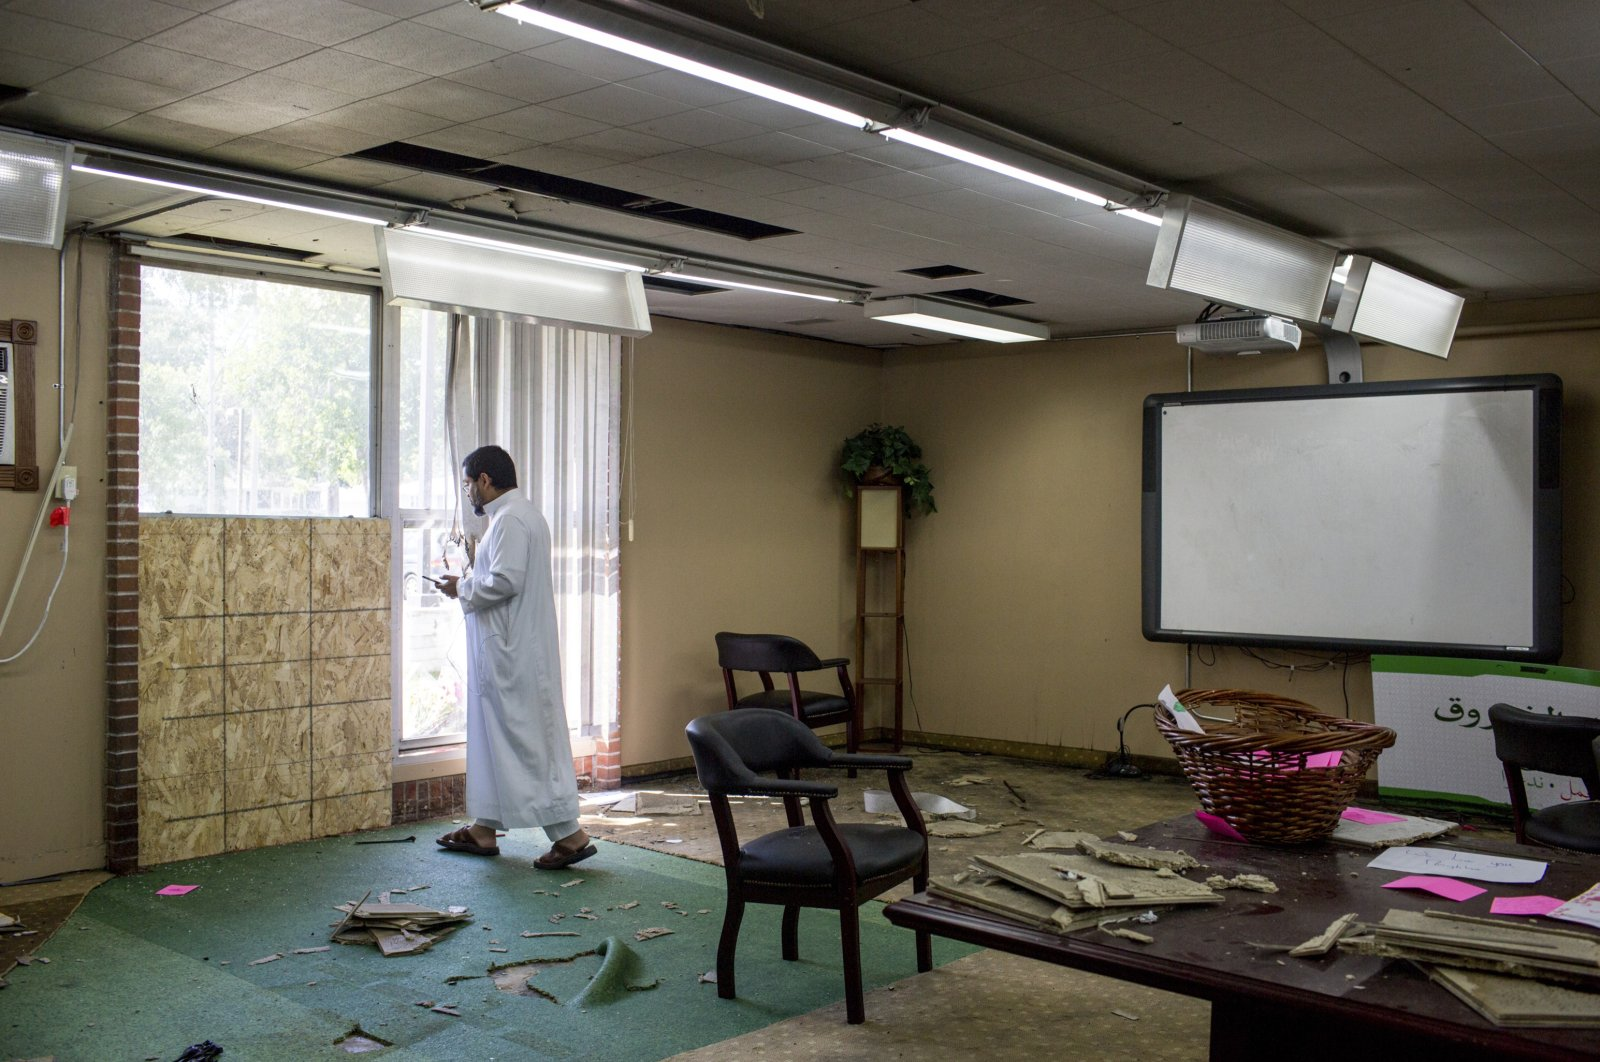 A man stands at the site of the bombing in the Dar Al Farooq Islamic Center in Bloomington, Minnesota, U.S., Aug. 7, 2017. (Star Tribune via AP)